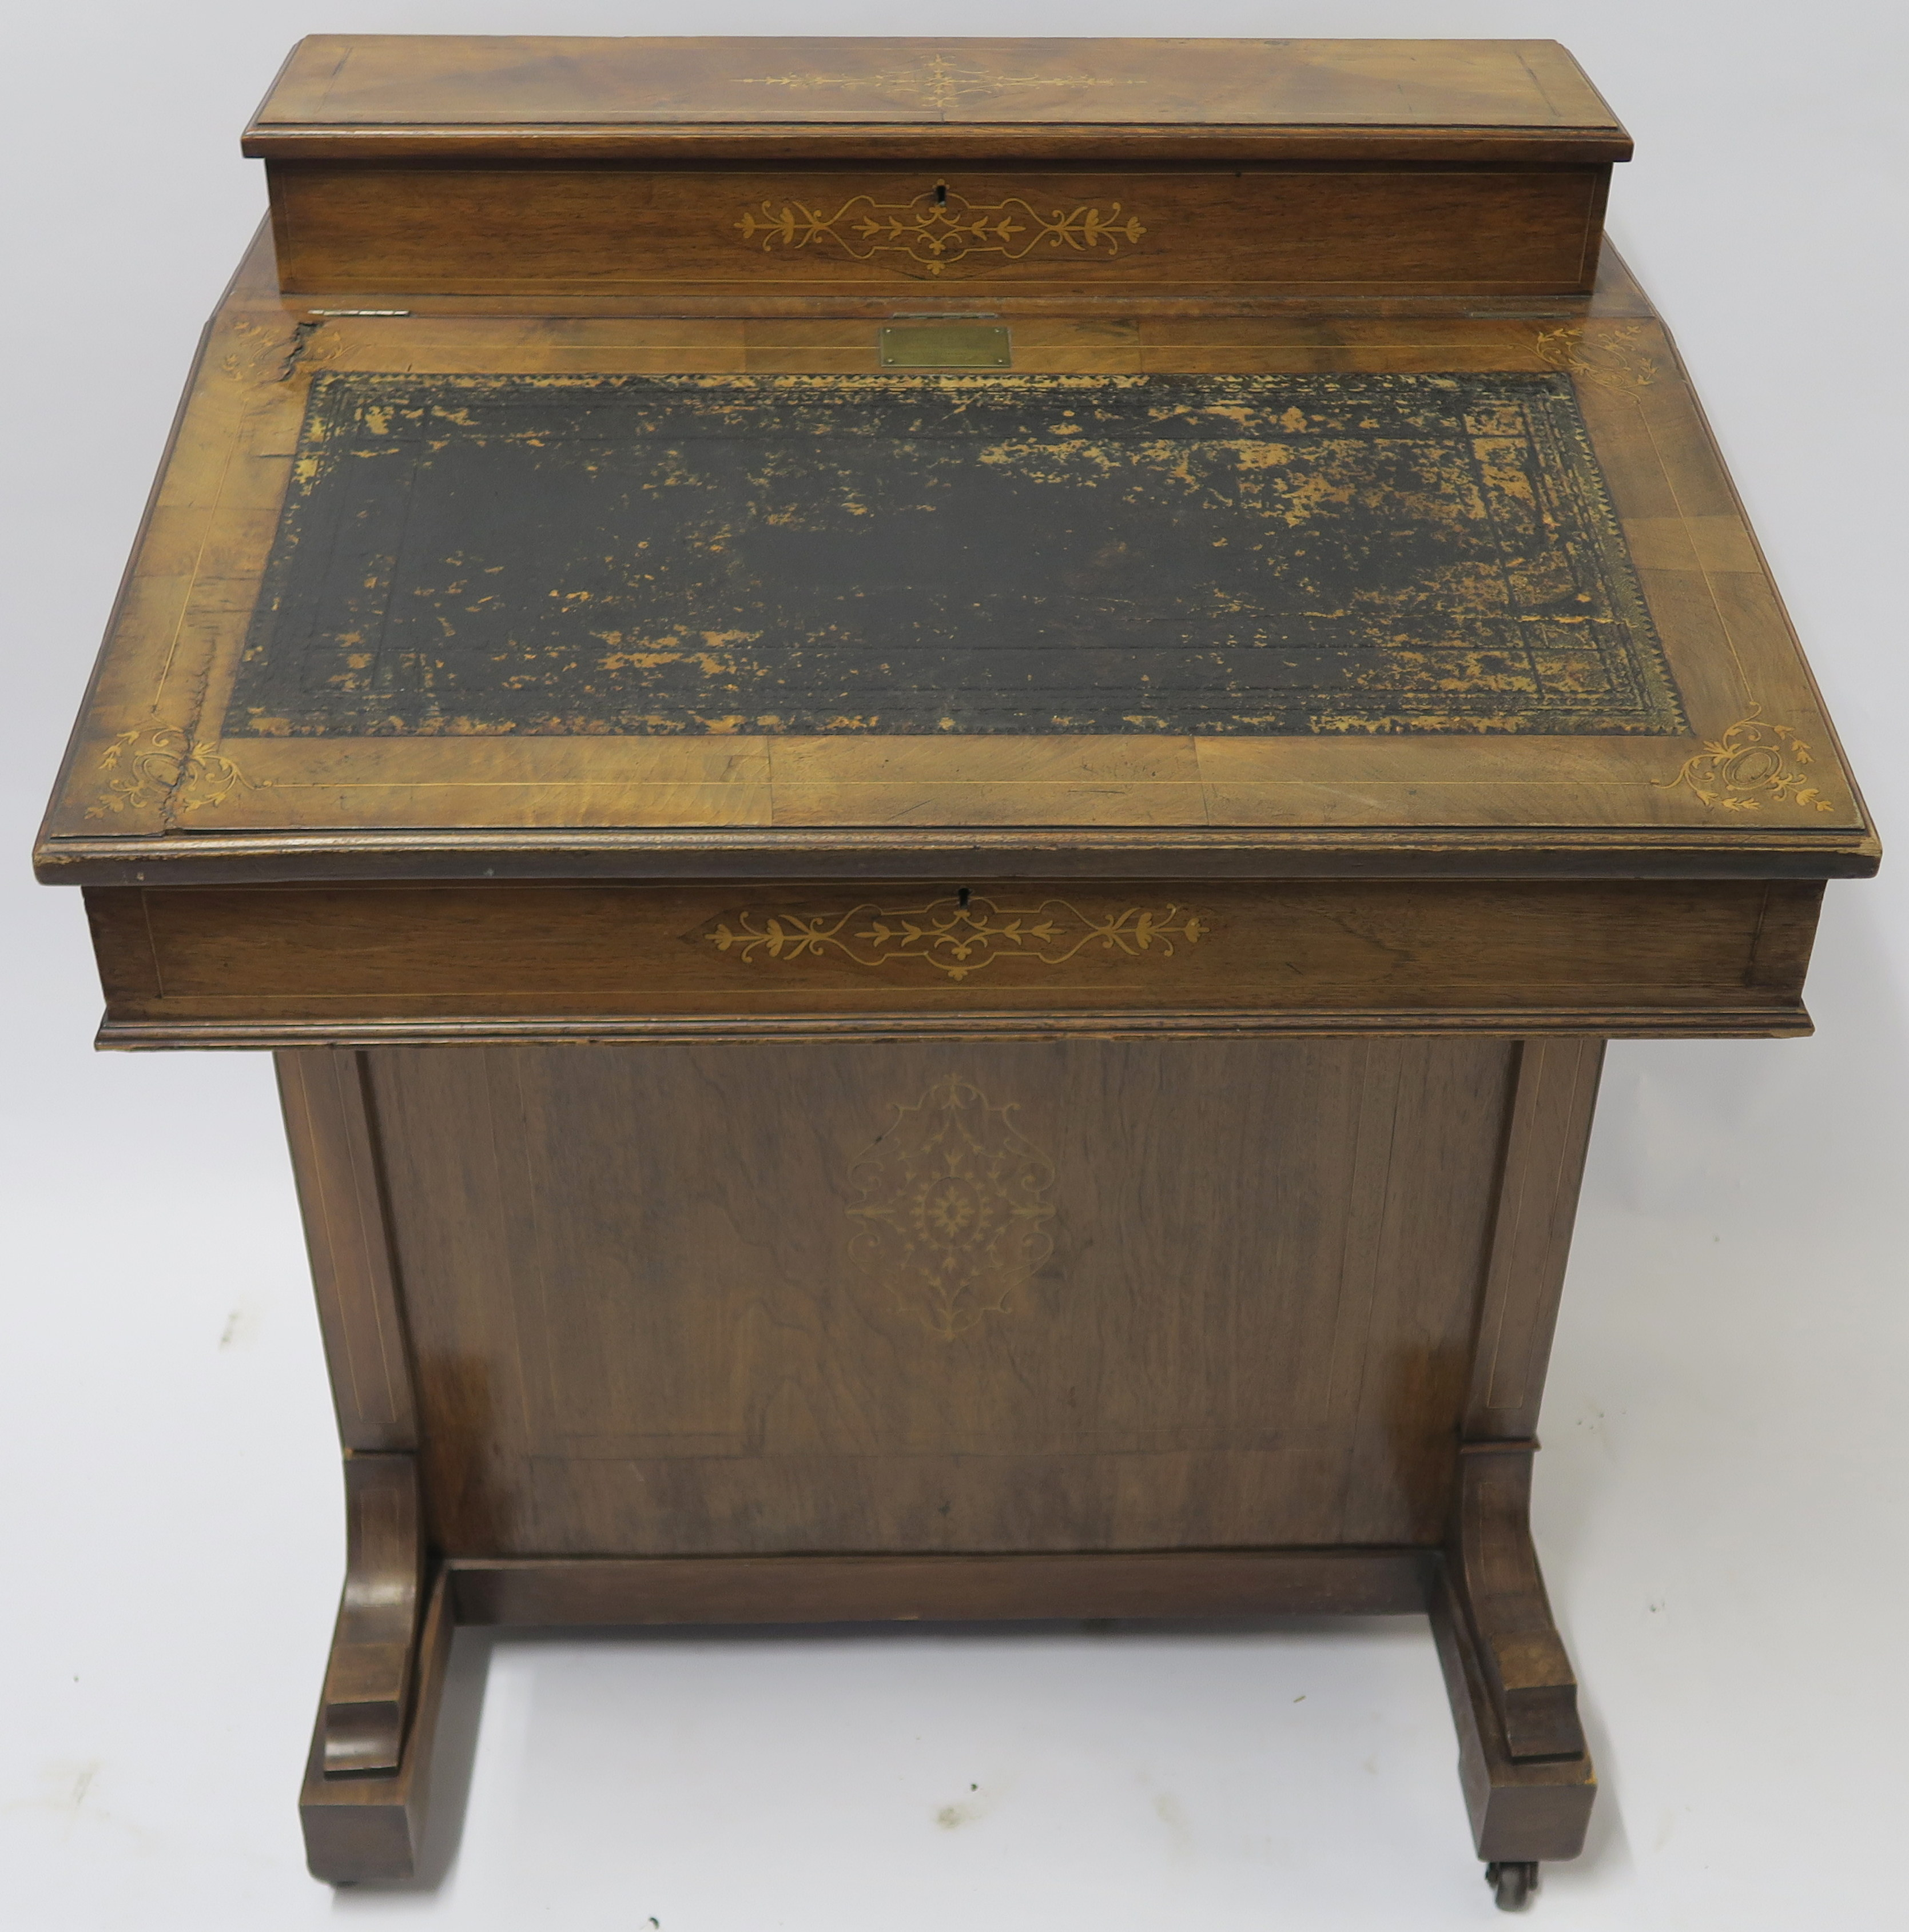 A VICTORIAN INLAID WALNUT DAVENPORT of standard design with four drawers 95cm high, 75cm wide and - Image 2 of 9